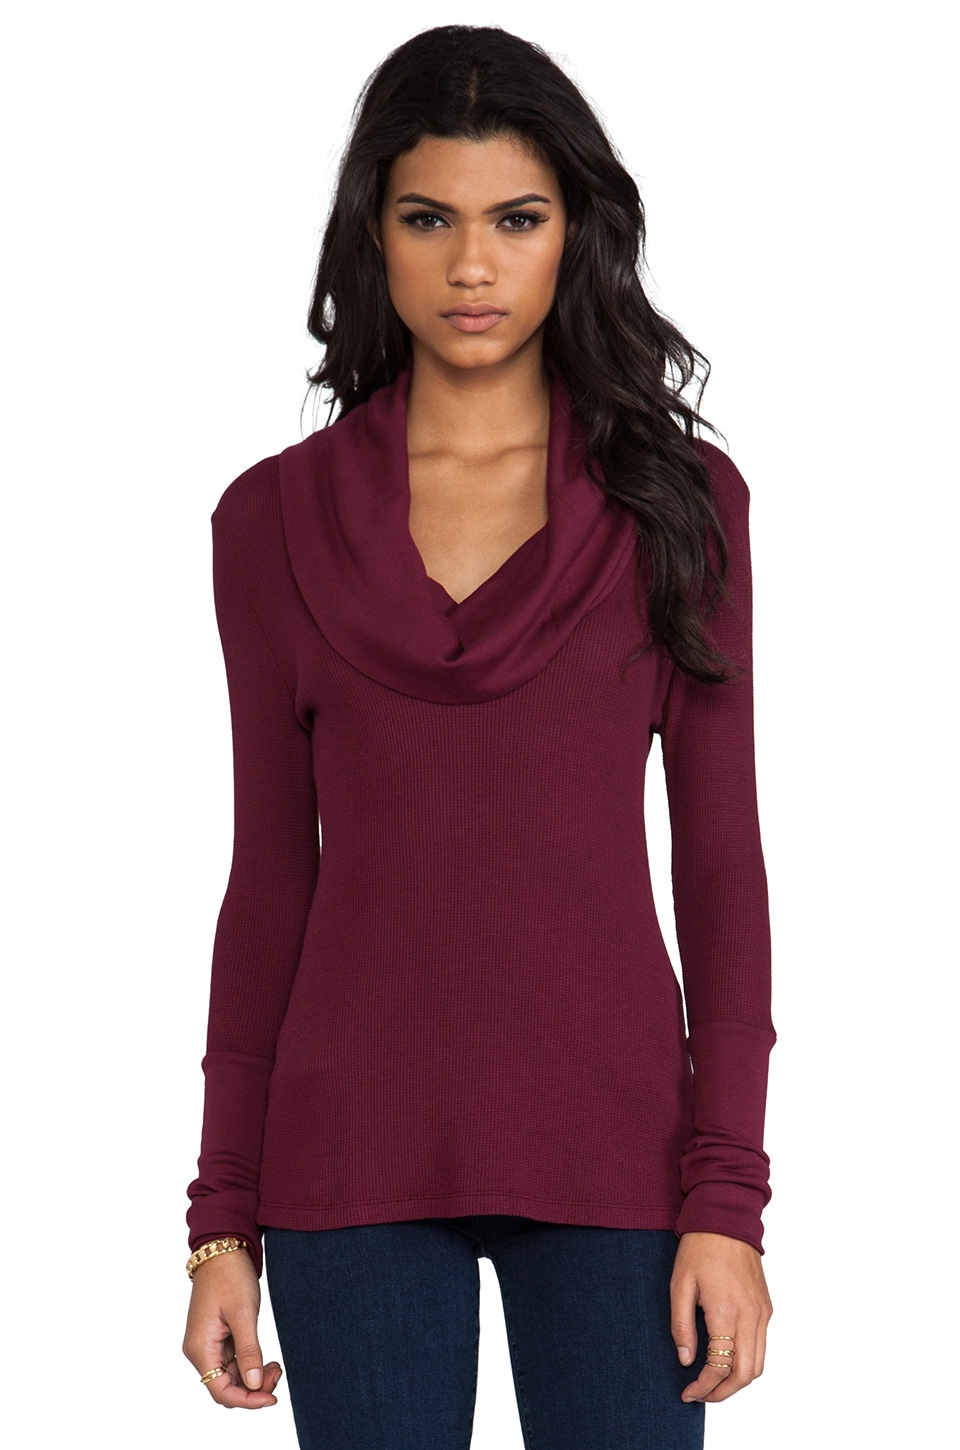 Bobi Thermal Cowl Neck Top in Merlot